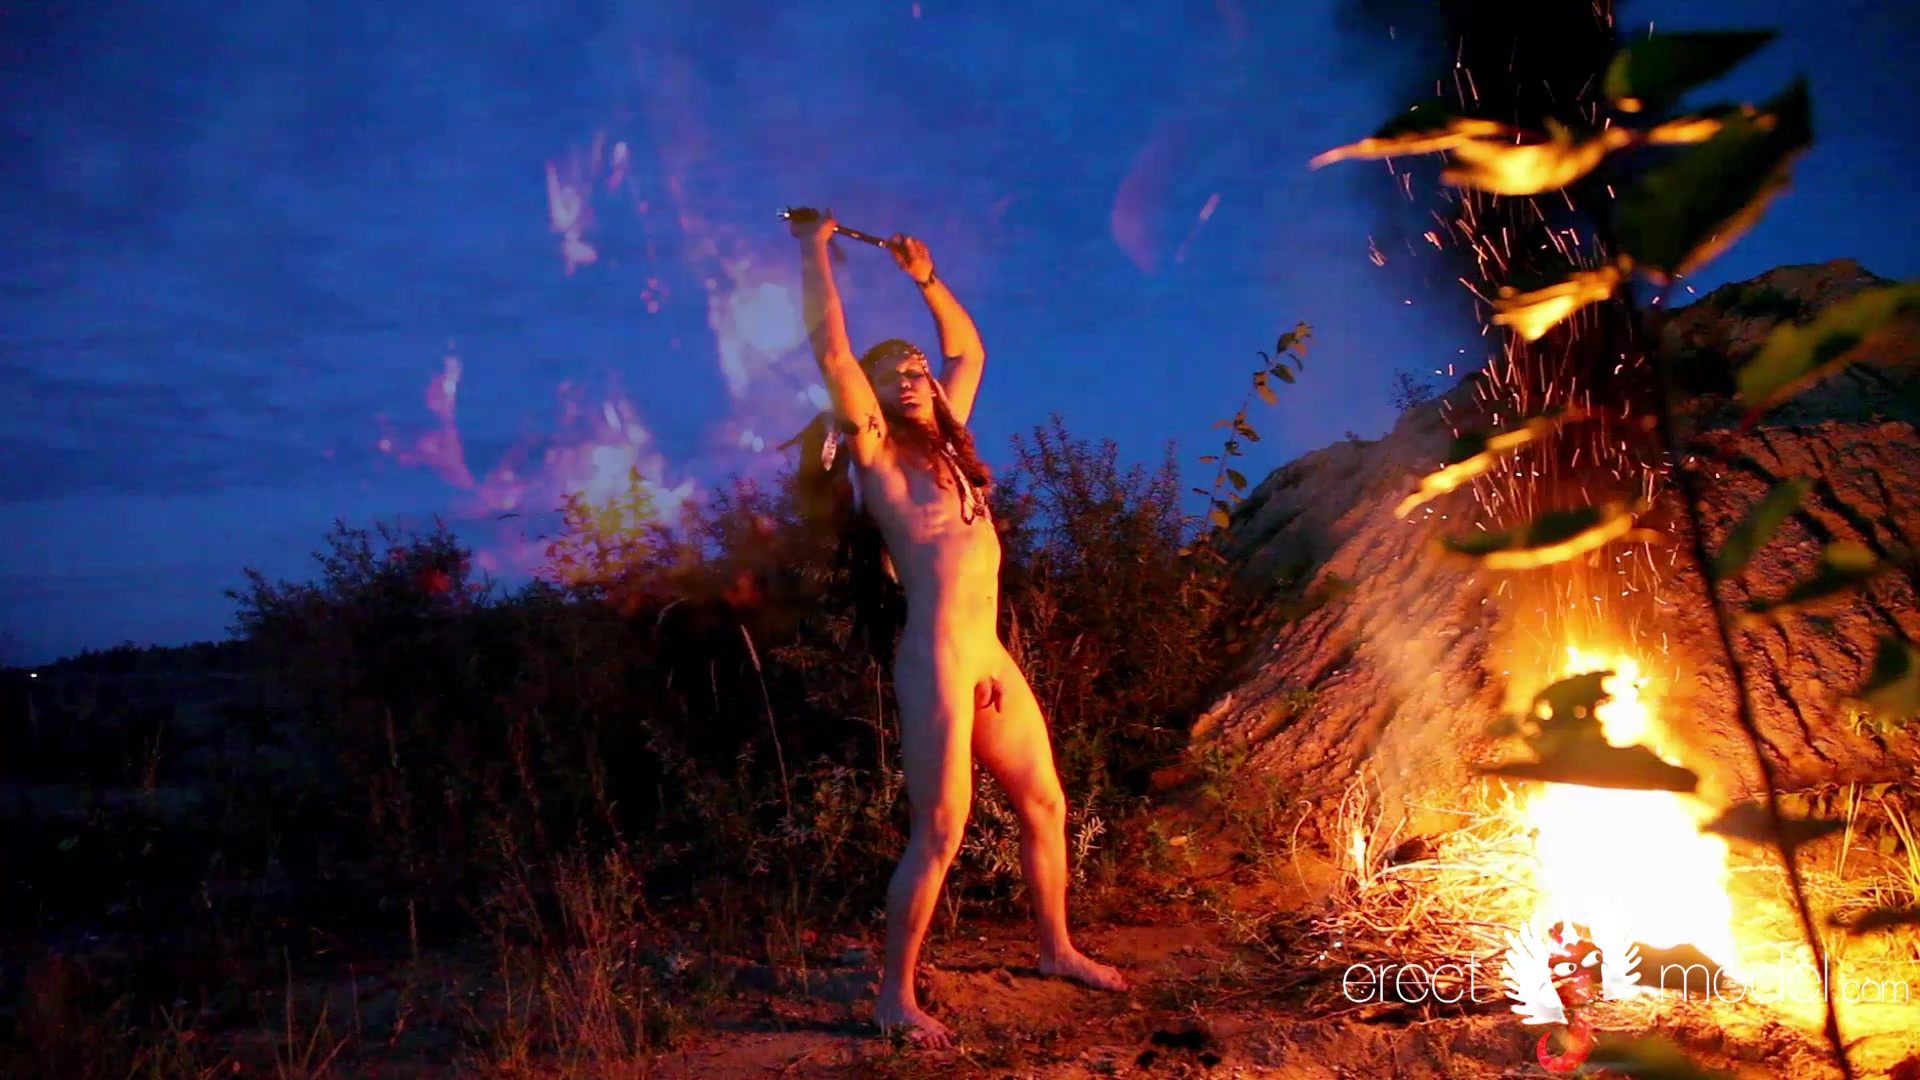 American indian nude and excited by his ritual dance